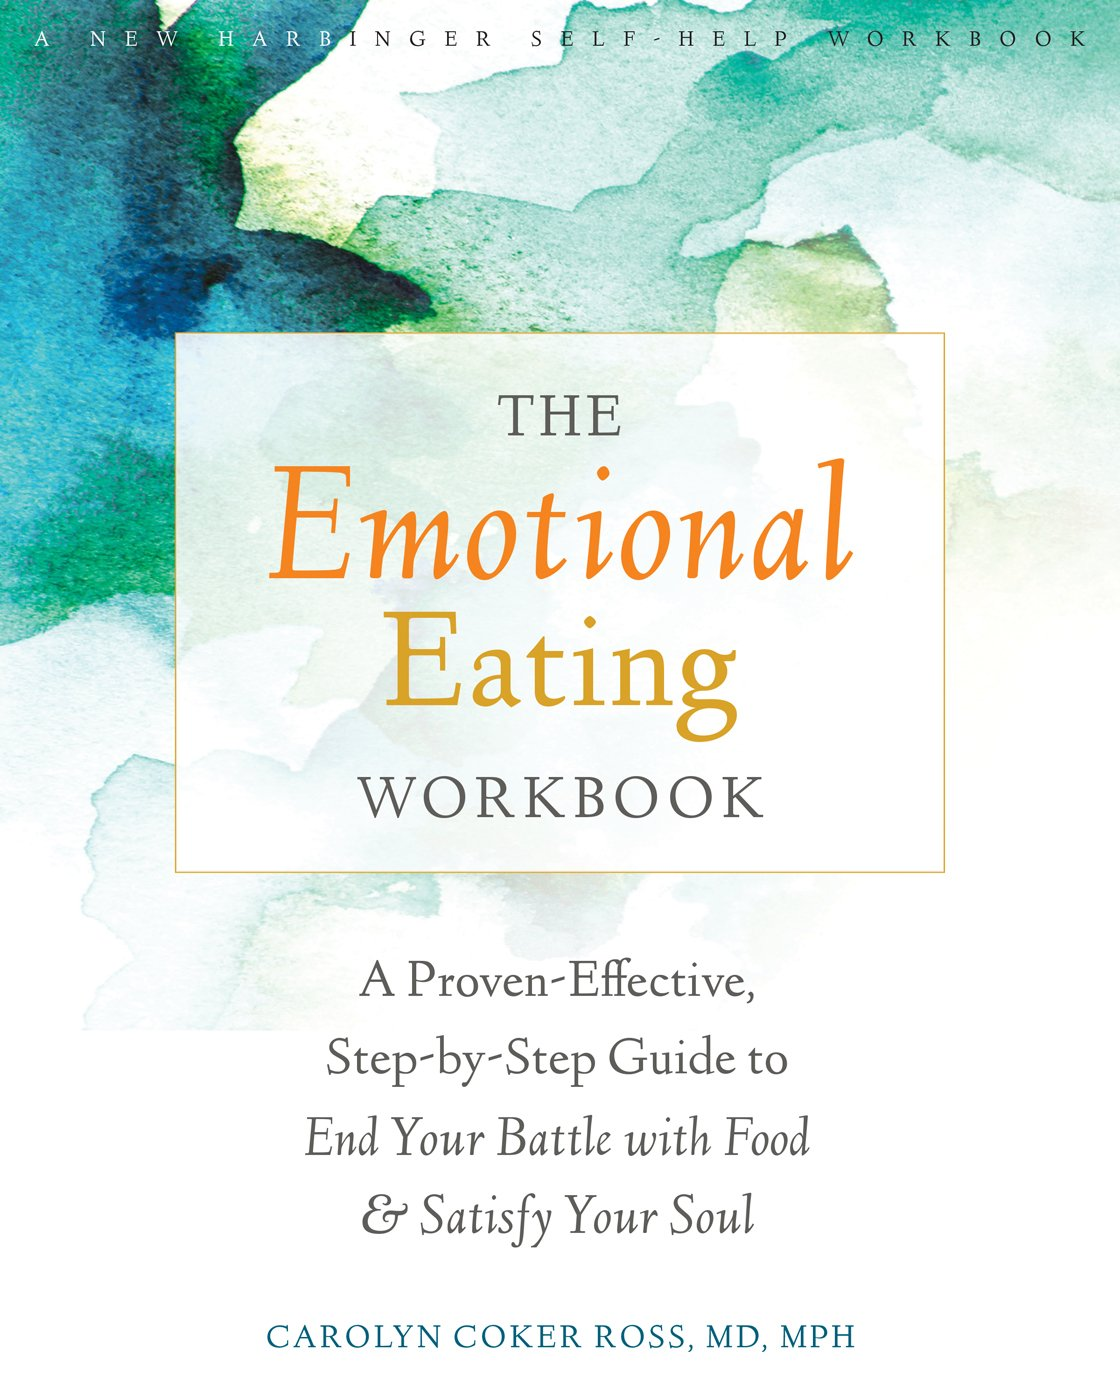 Workbooks eating disorder workbook : The Emotional Eating Workbook: A Proven-Effective, Step-by-Step ...